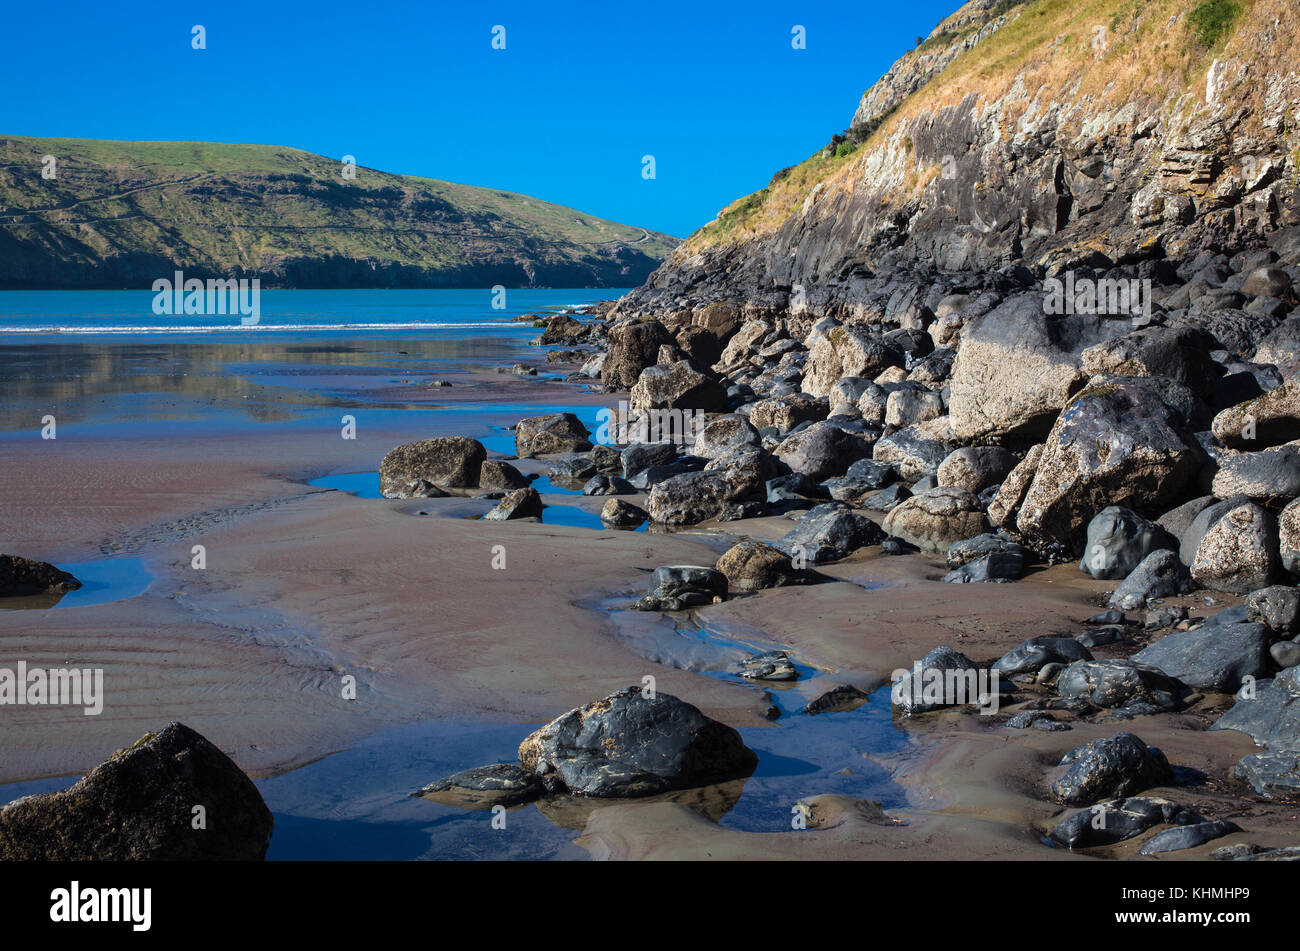 Sights along the beach in a secluded Bay, South Island, New Zealand: Stock Photo